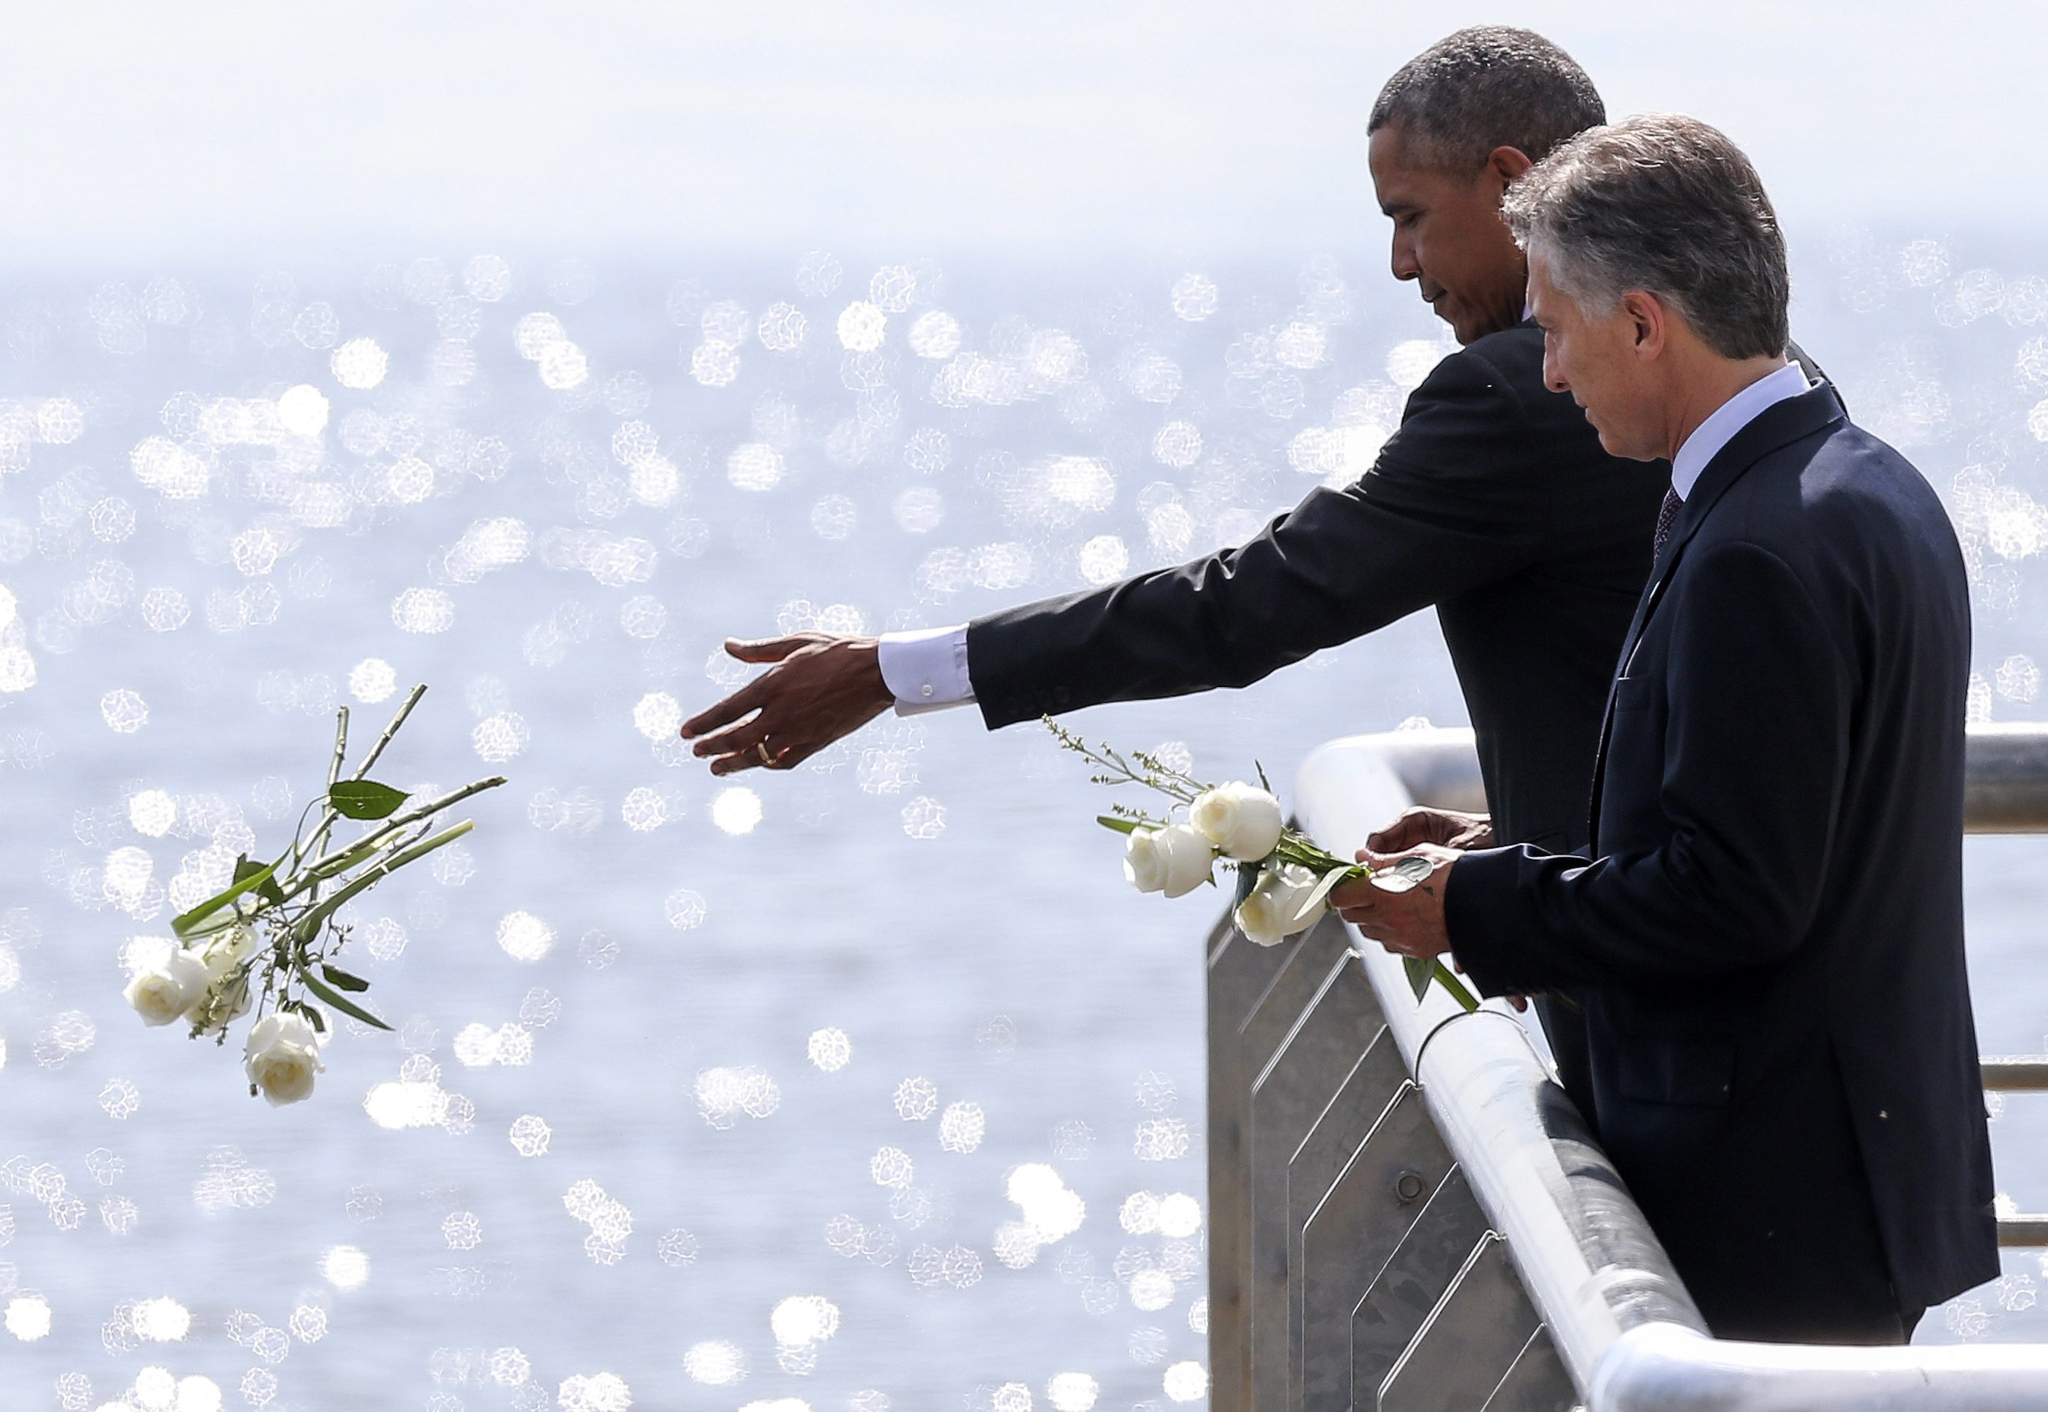 US President Obama visits Argentina...epa05229215 US President Barack Obama (L) and his counterpart from Argentina Mauricio Macri (R) make a floral tribute to the victims of the military dictatorship aat Parque de la Memoria in Buenos Aires, Argentina, 24 March 2016. During the tour of the wall, next to the Rio de la plata, the leaders approached the railing, next to the runway, and threw white flowers in tribute to those who lost their lives at the military dictatorship.  EPA/DAVID FERNANDEZ